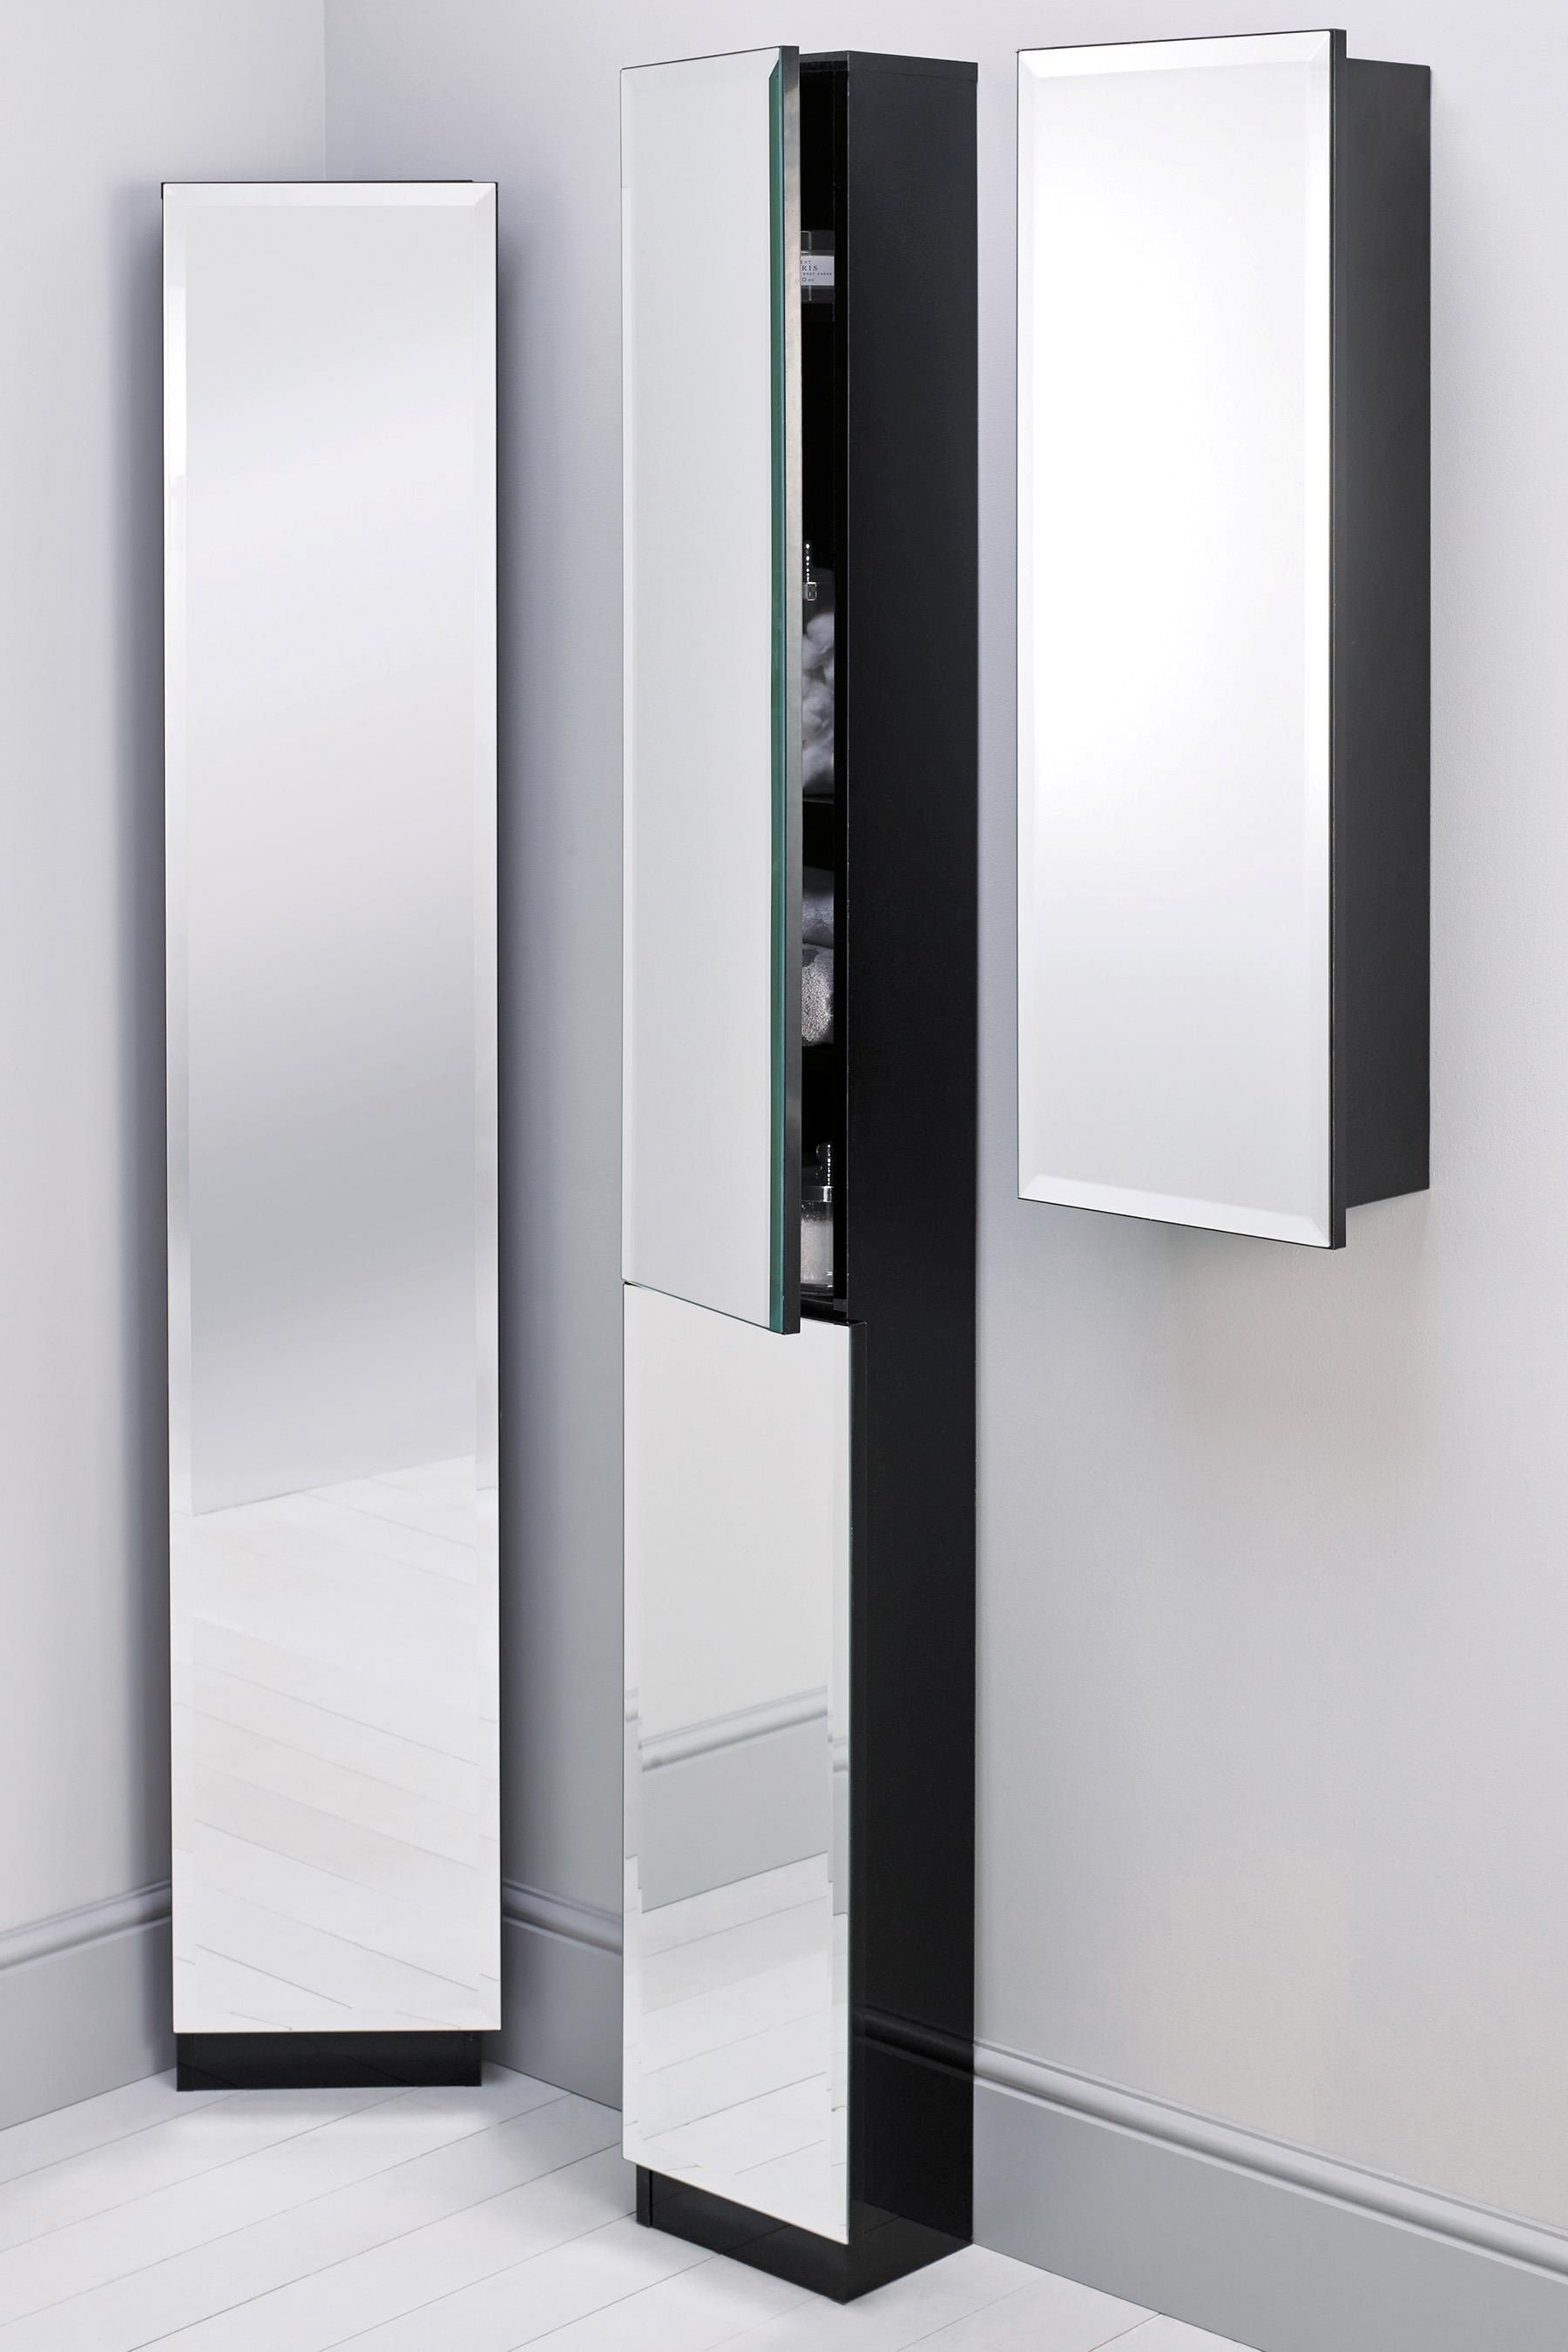 Tall Mirrored Corner Bathroom Cabinets